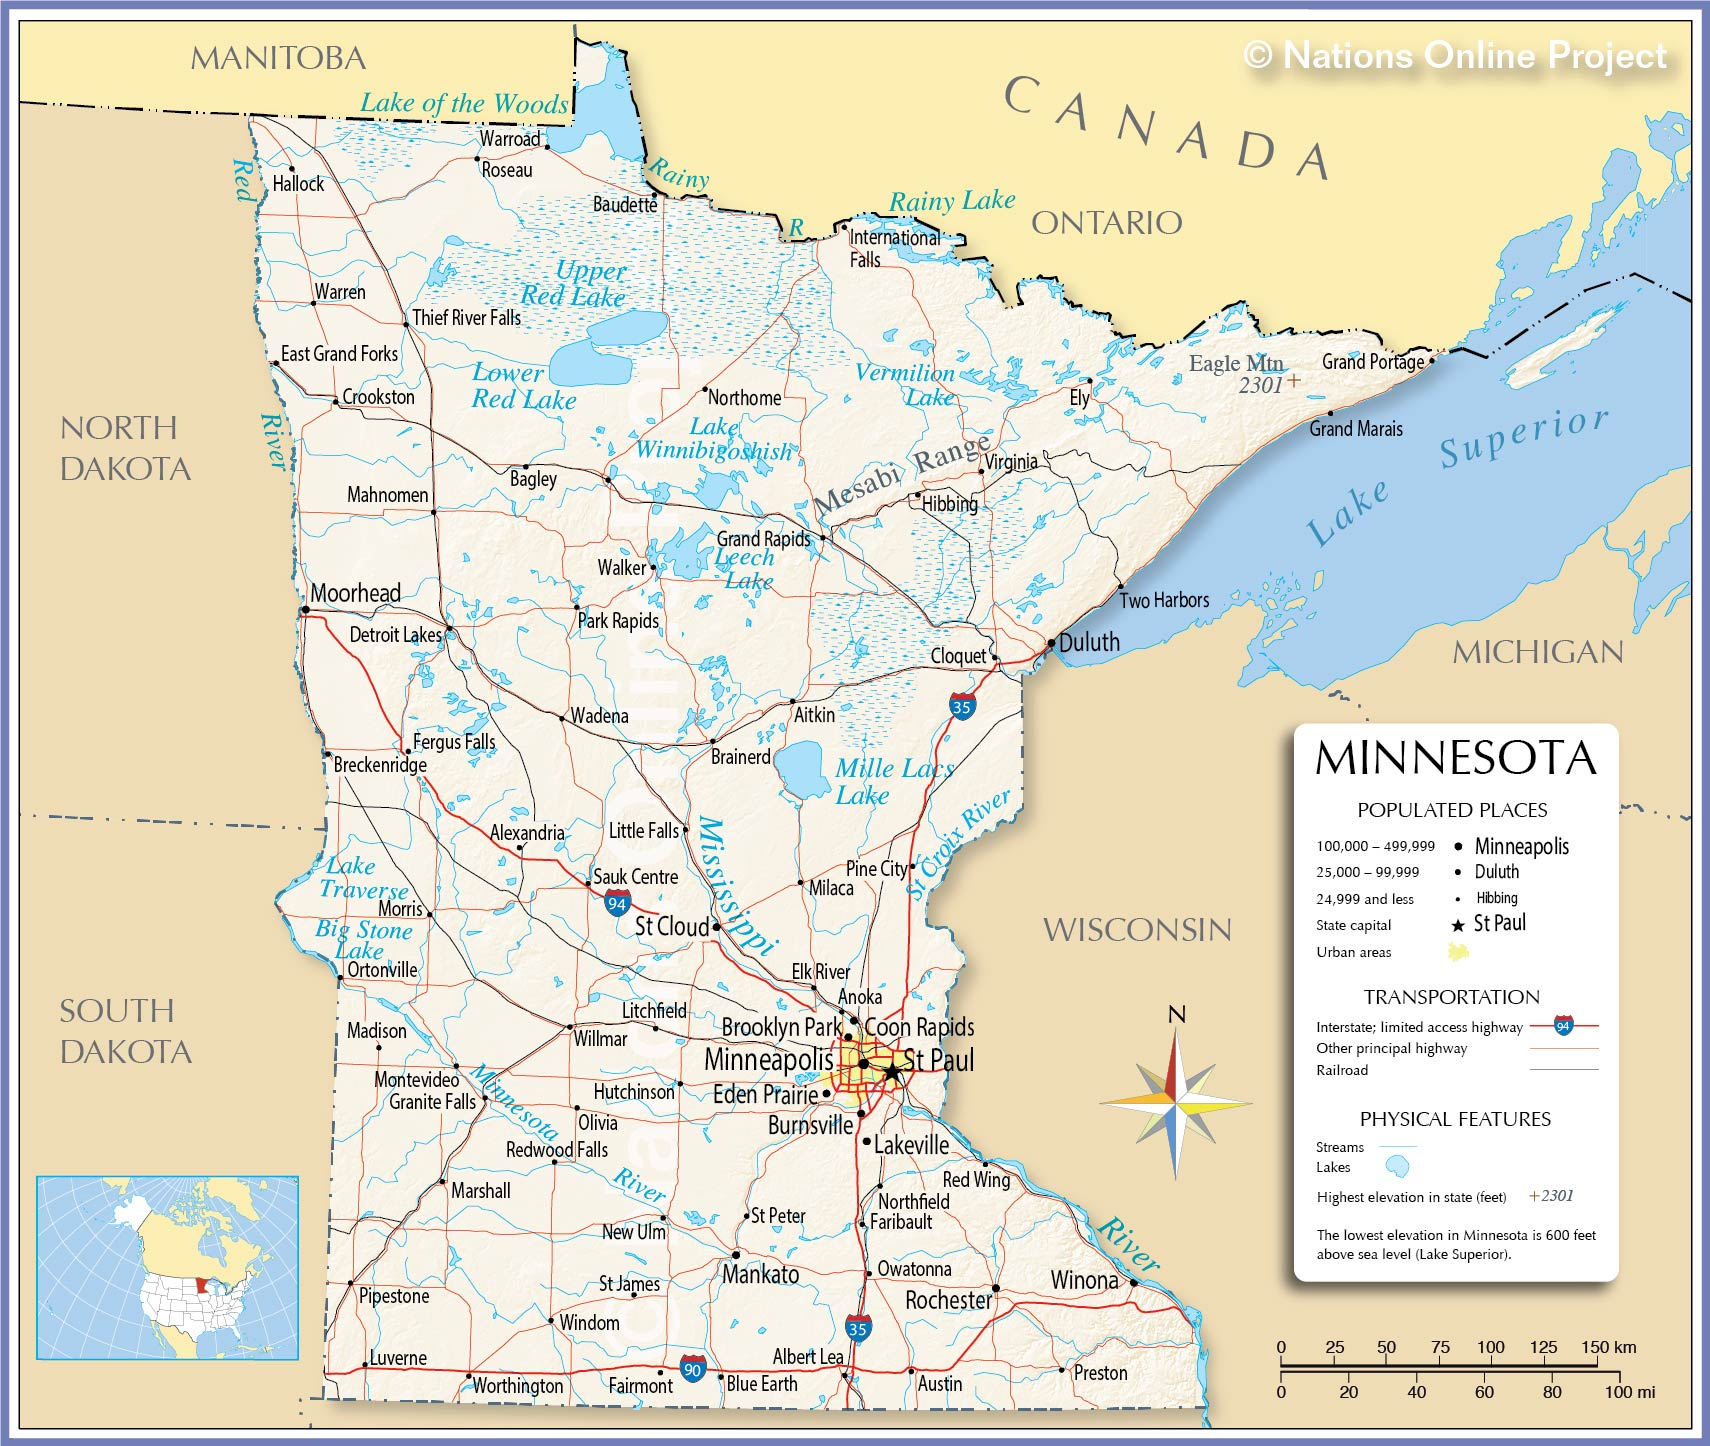 Reference Map Of Minnesota USA Nations Online Project - Maps of minnesota